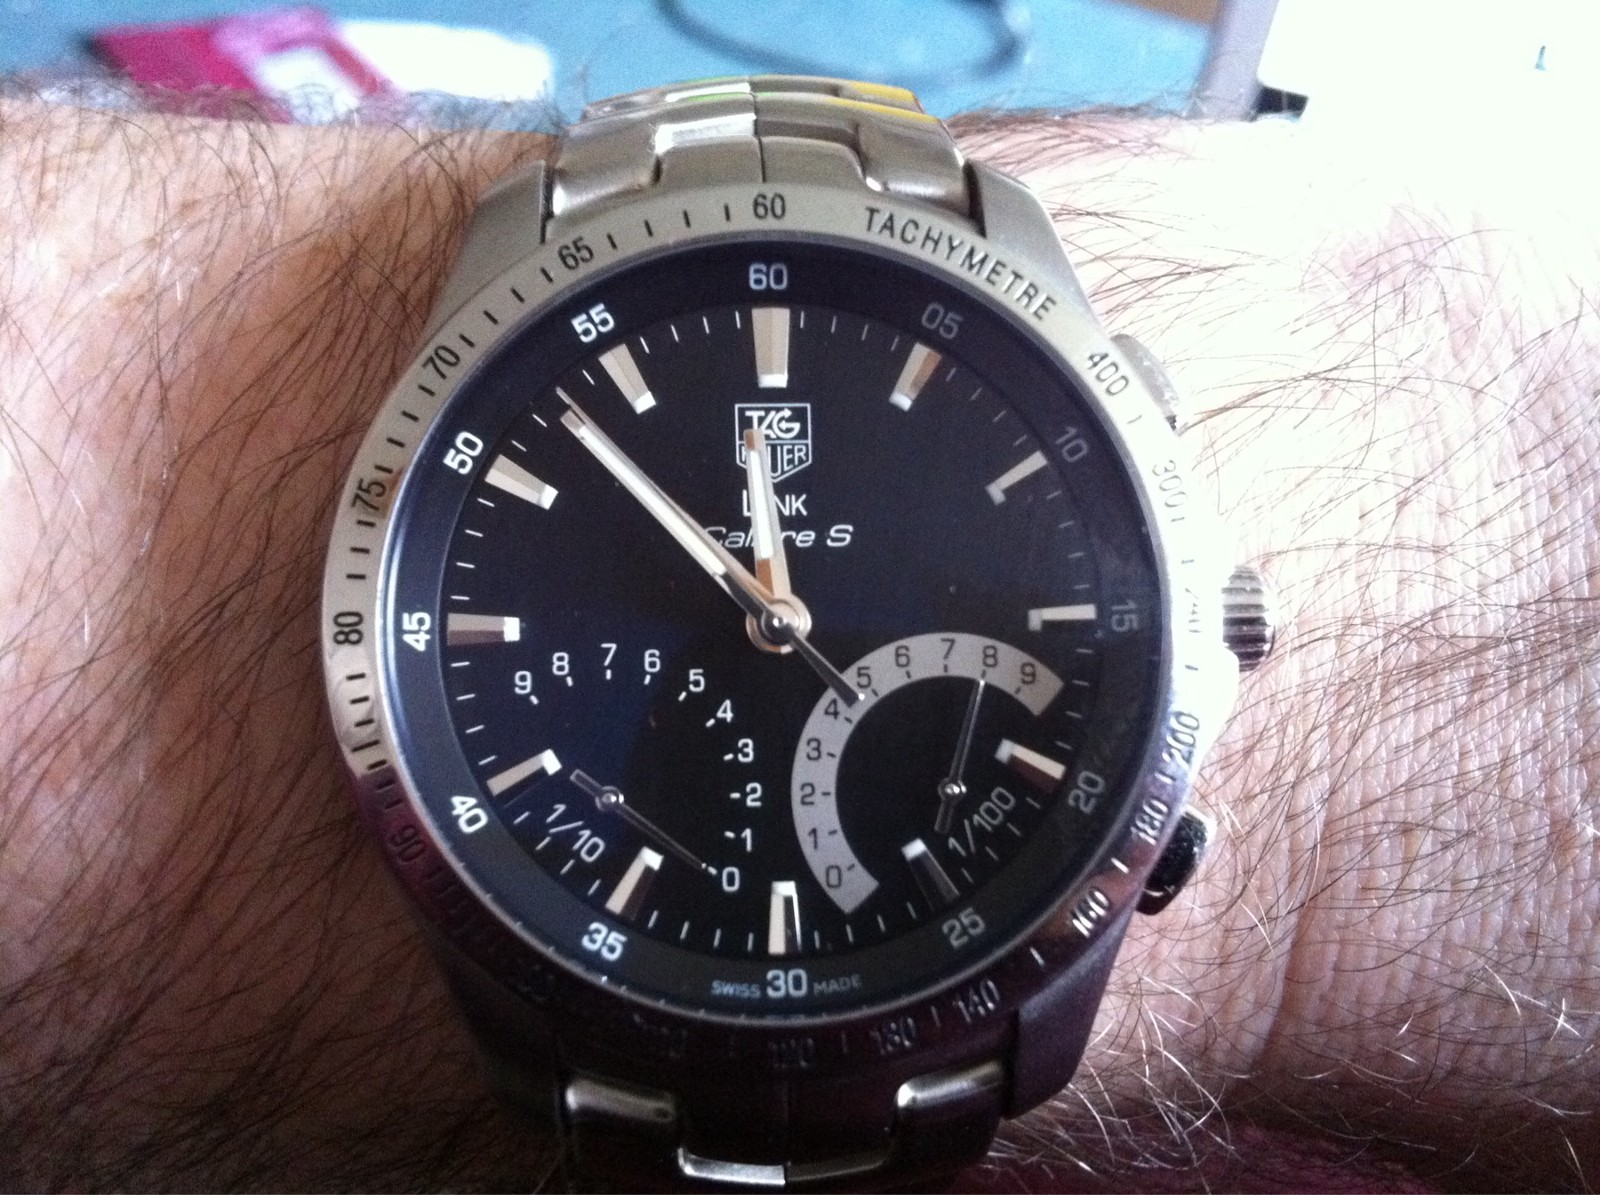 Tag heuer carrera calibre s full review youtube.